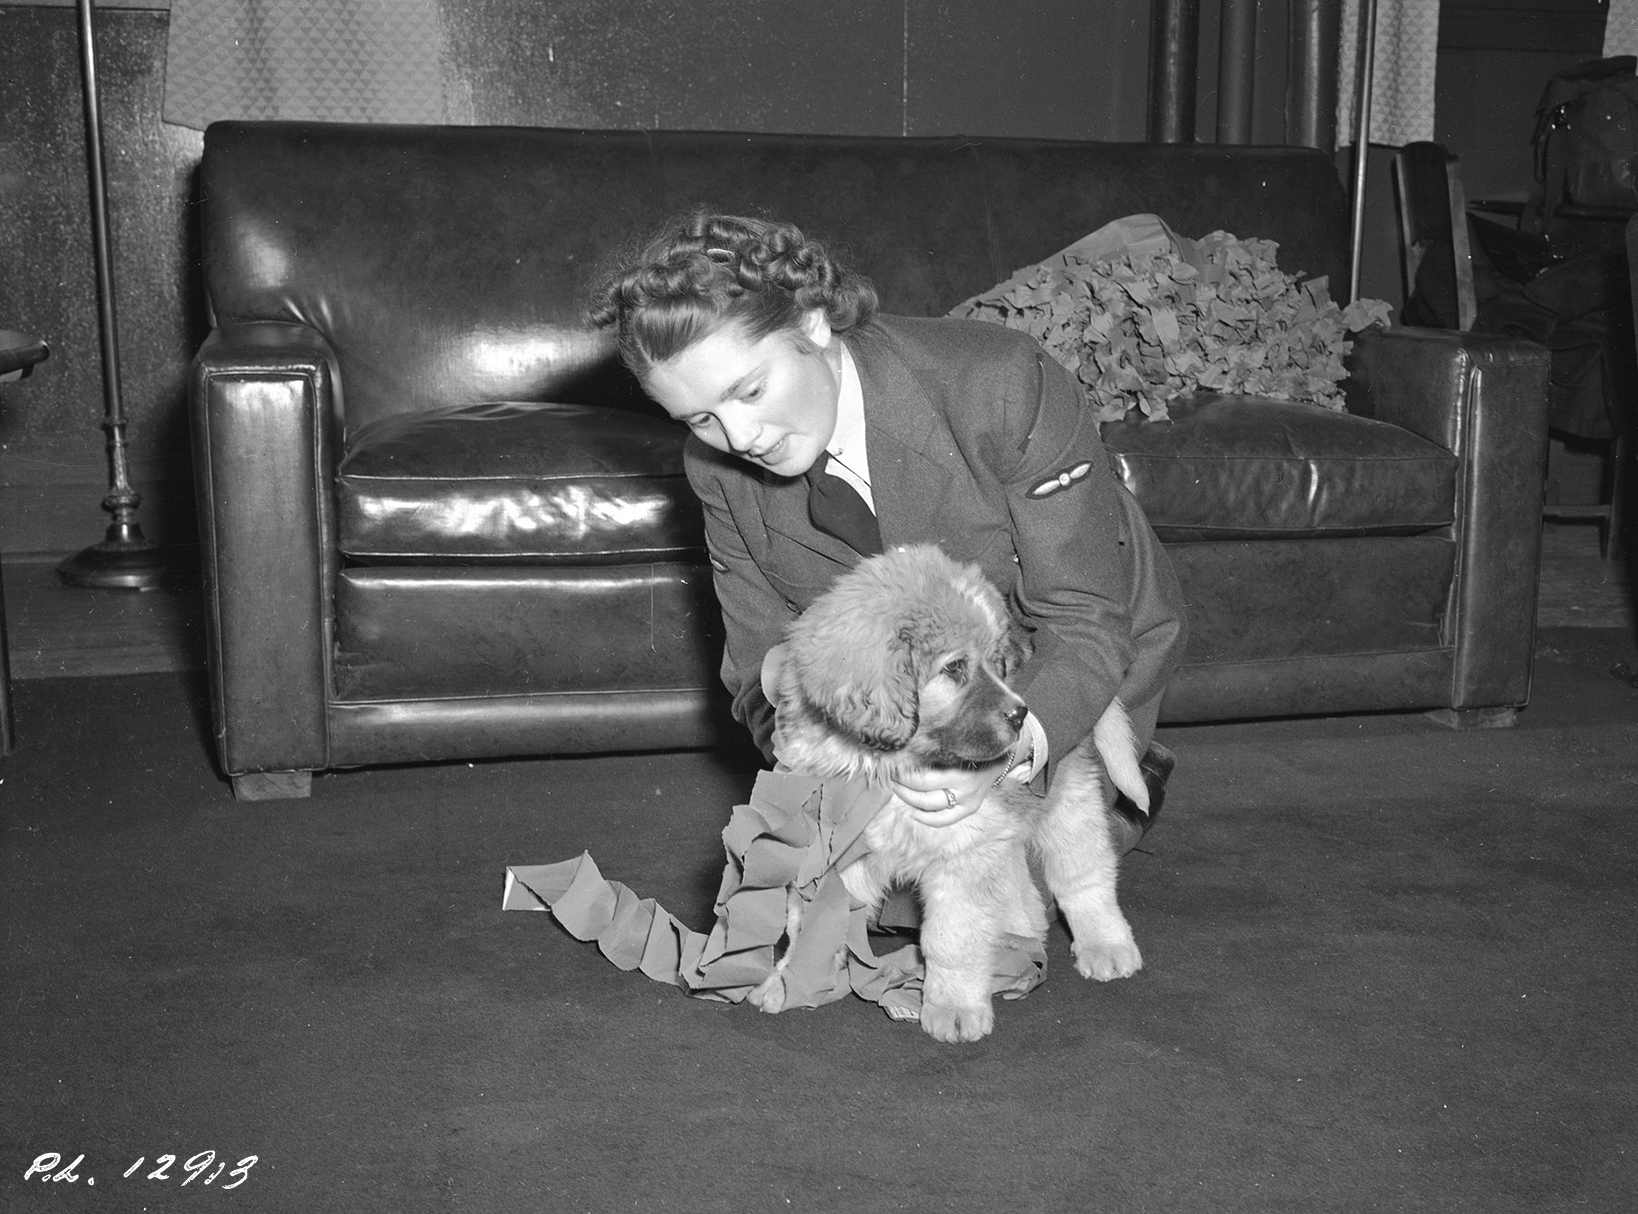 On December 11, 1942, a Royal Canadian Air Force airwomen serving at No. 9 Bombing and Gunnery School on RCAF Station Mont-Joli, Québec, decorates the school dog for Christmas. PHOTO: DND Archives, PL-12913